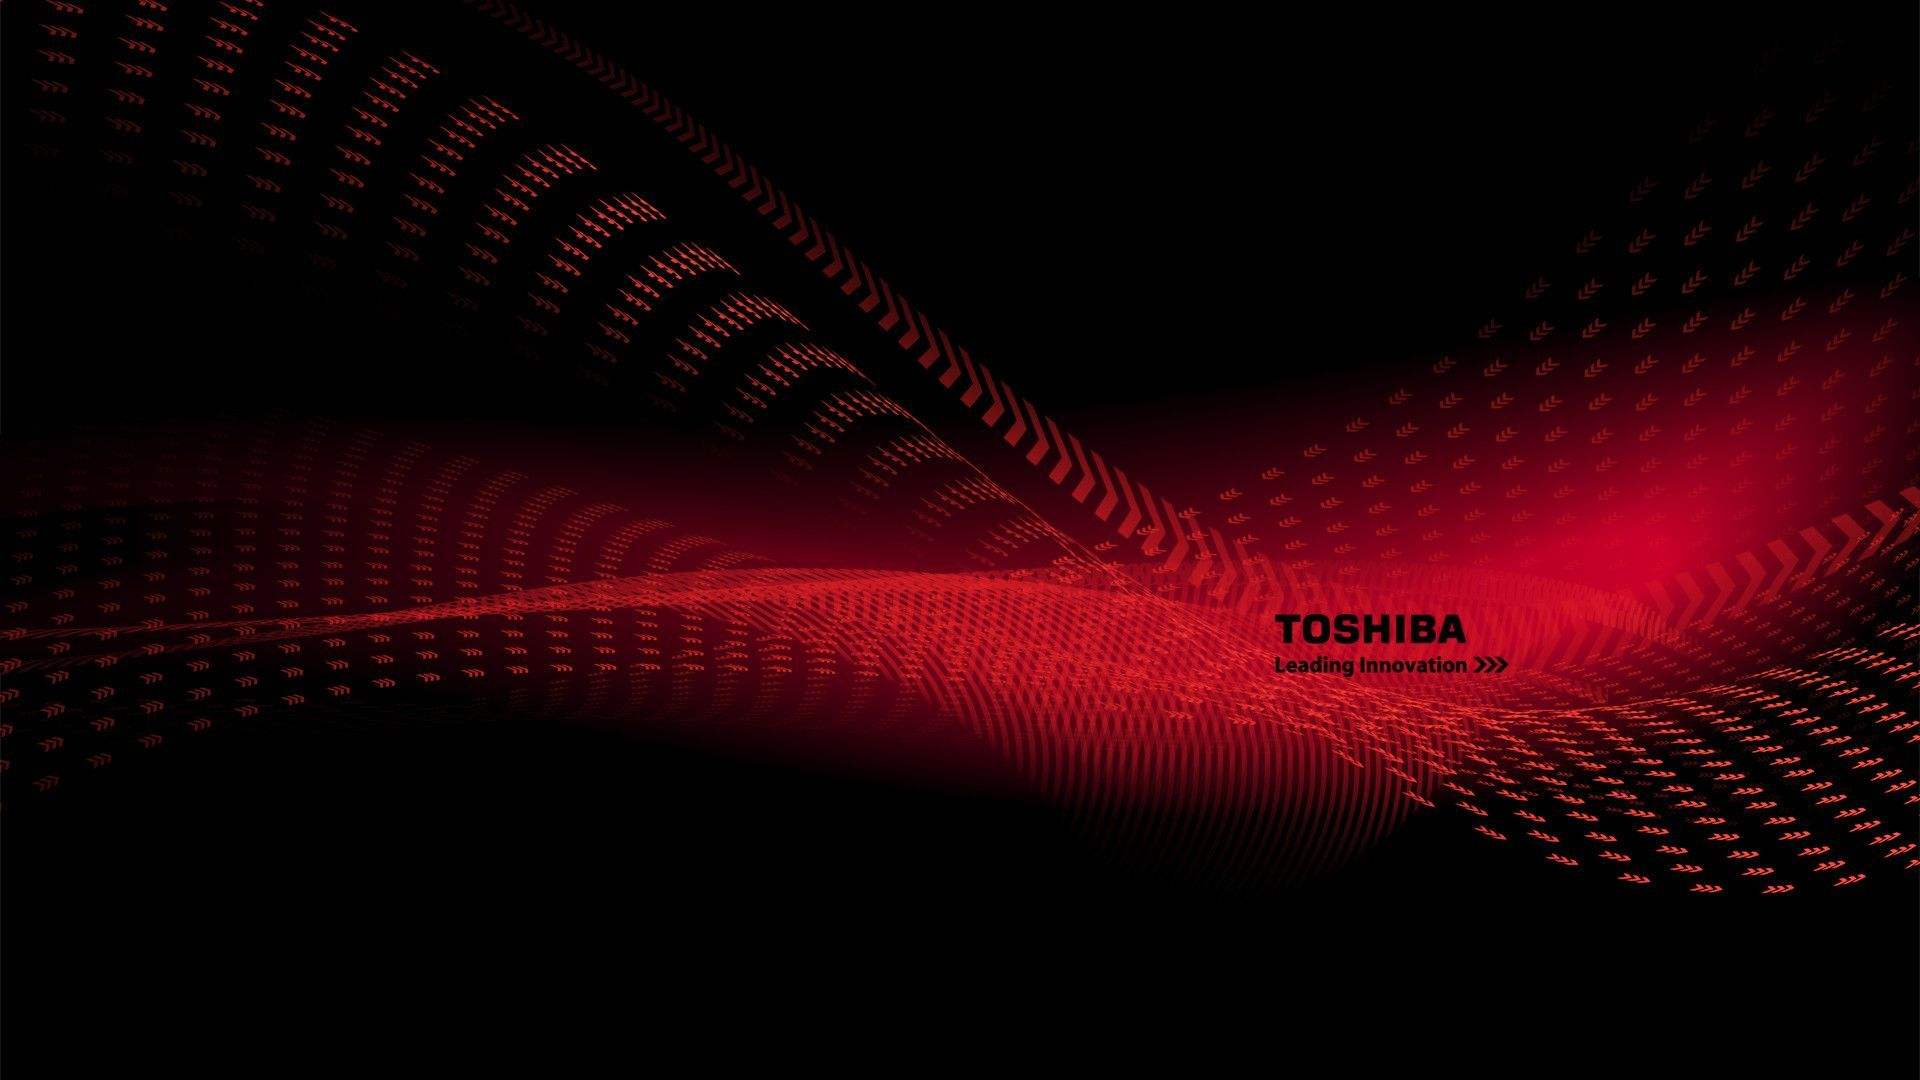 Toshiba High Quality Wallpaper  Free Wallpapers 1920x1080